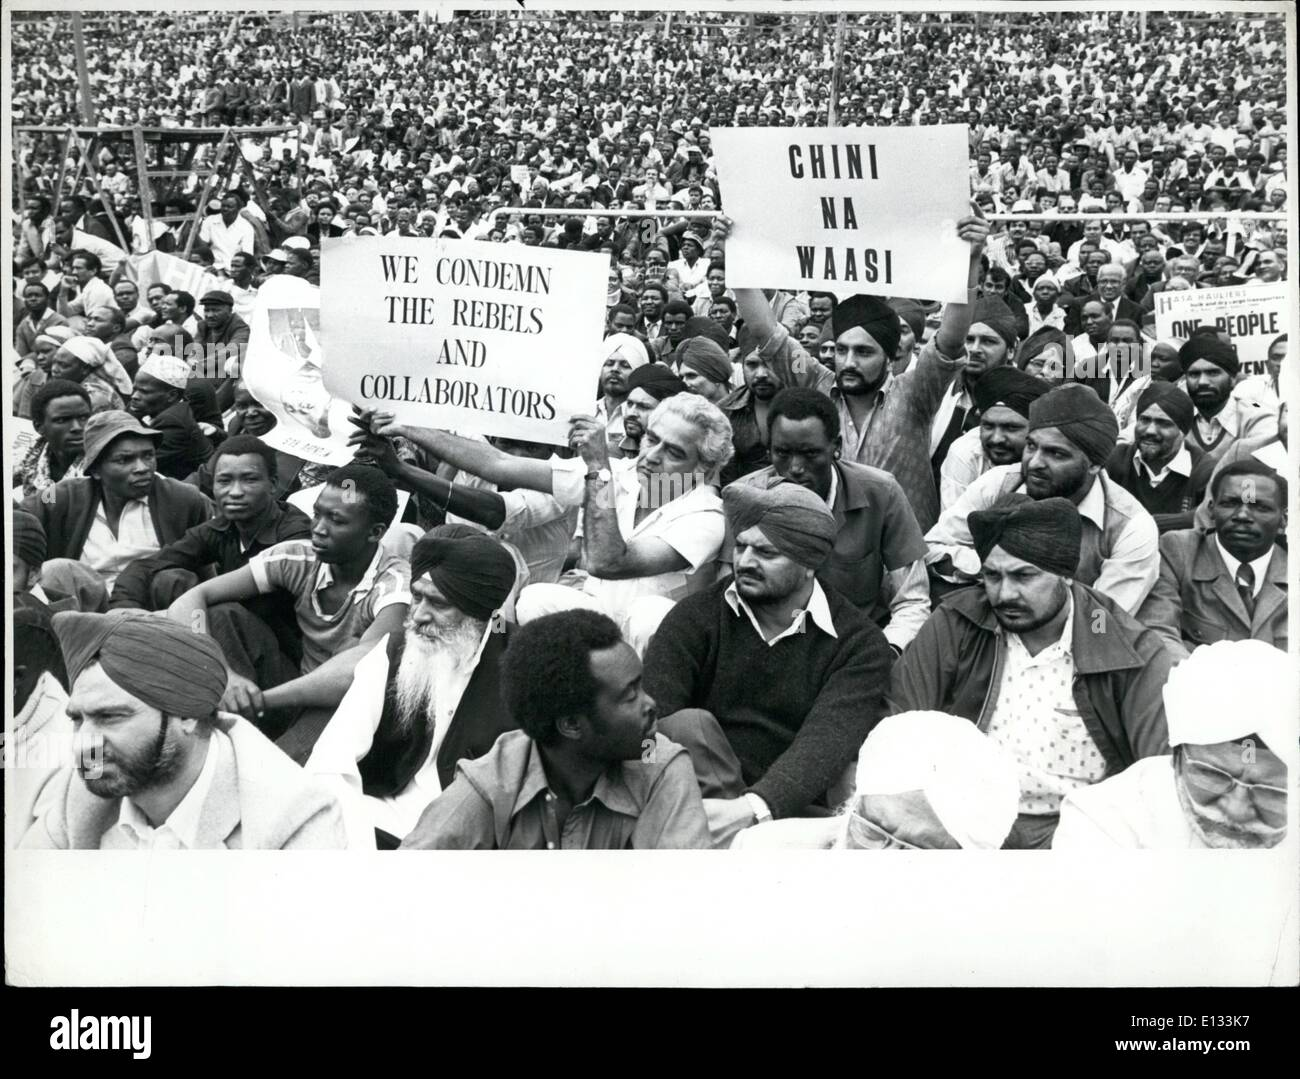 Feb. 26, 2012 - Loyal Demo: A large cross section of the estimated total of 30,000 people who turned out in full force on Wednesday, 11 August, 1982, in Nairobi's Uhuru Park to demonstrate their support for President moi, Kanu, and the government of Kenya after the abortive coup attempt by men of the Kenya Air Force, on August 1982, it included a significant representation of Asians, who were badly hit by the breakout of lawlessness during theshort-lived coup bid. - Stock Image